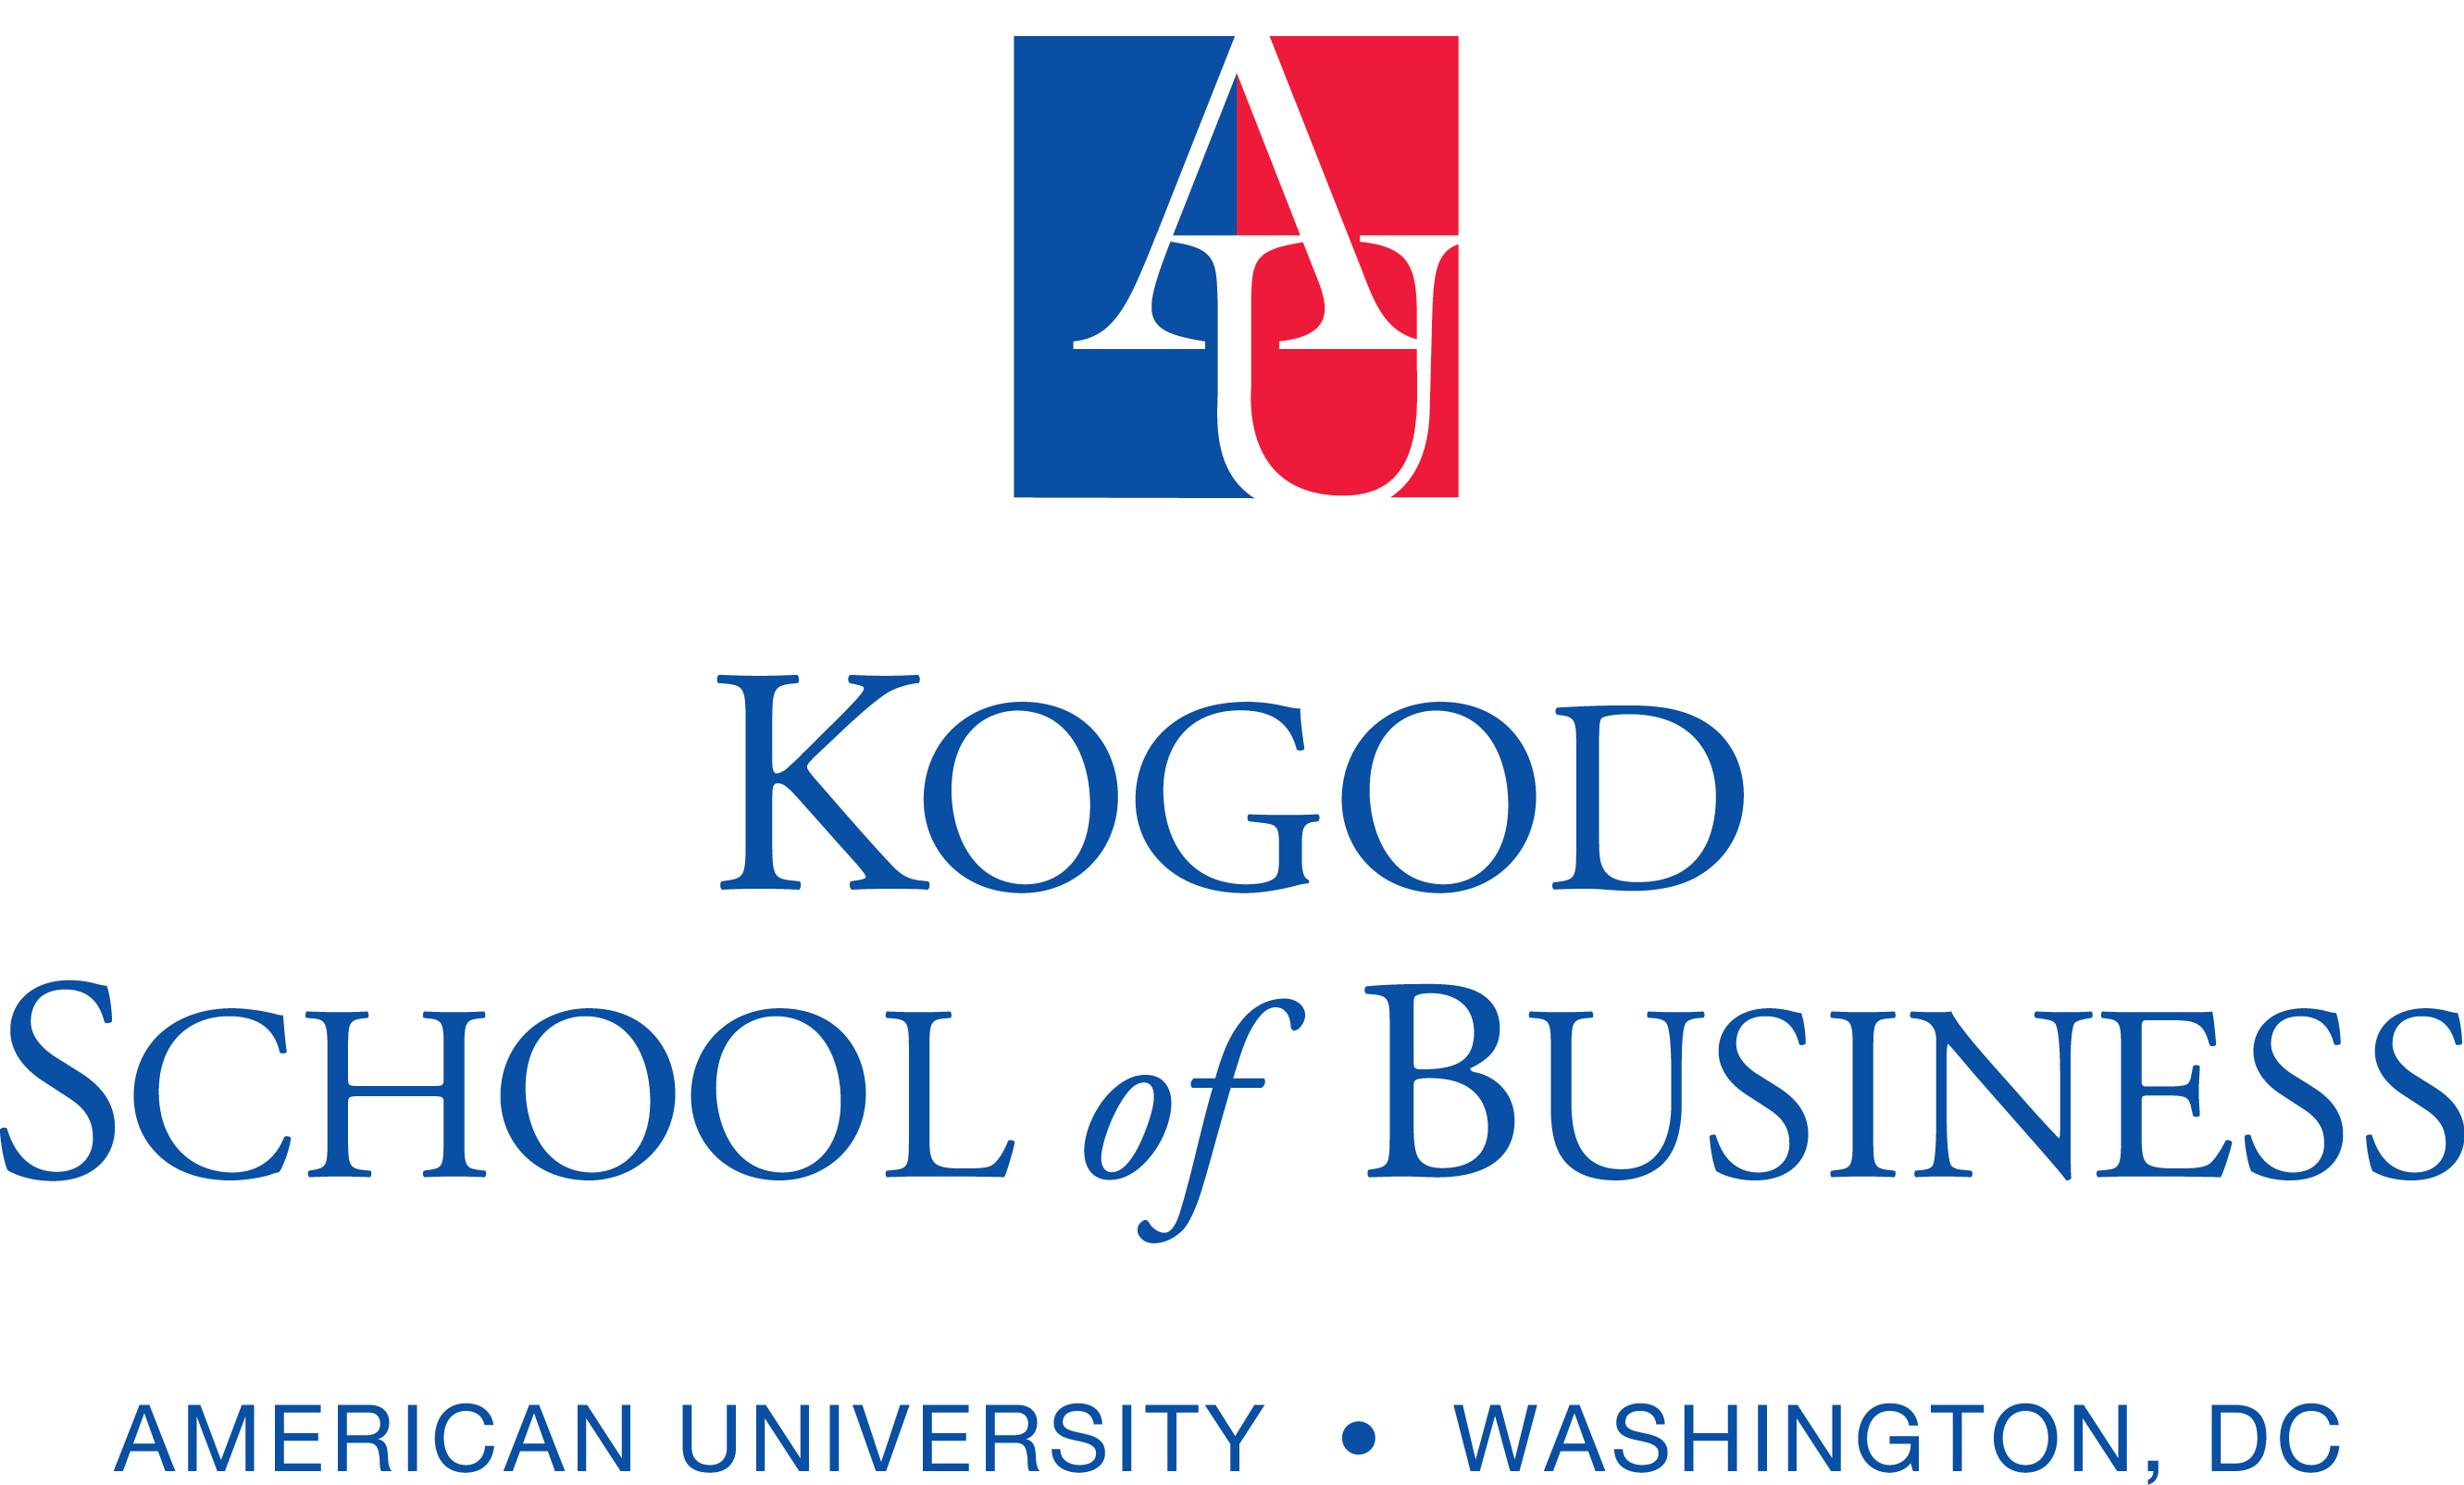 American University Kogod School of Business